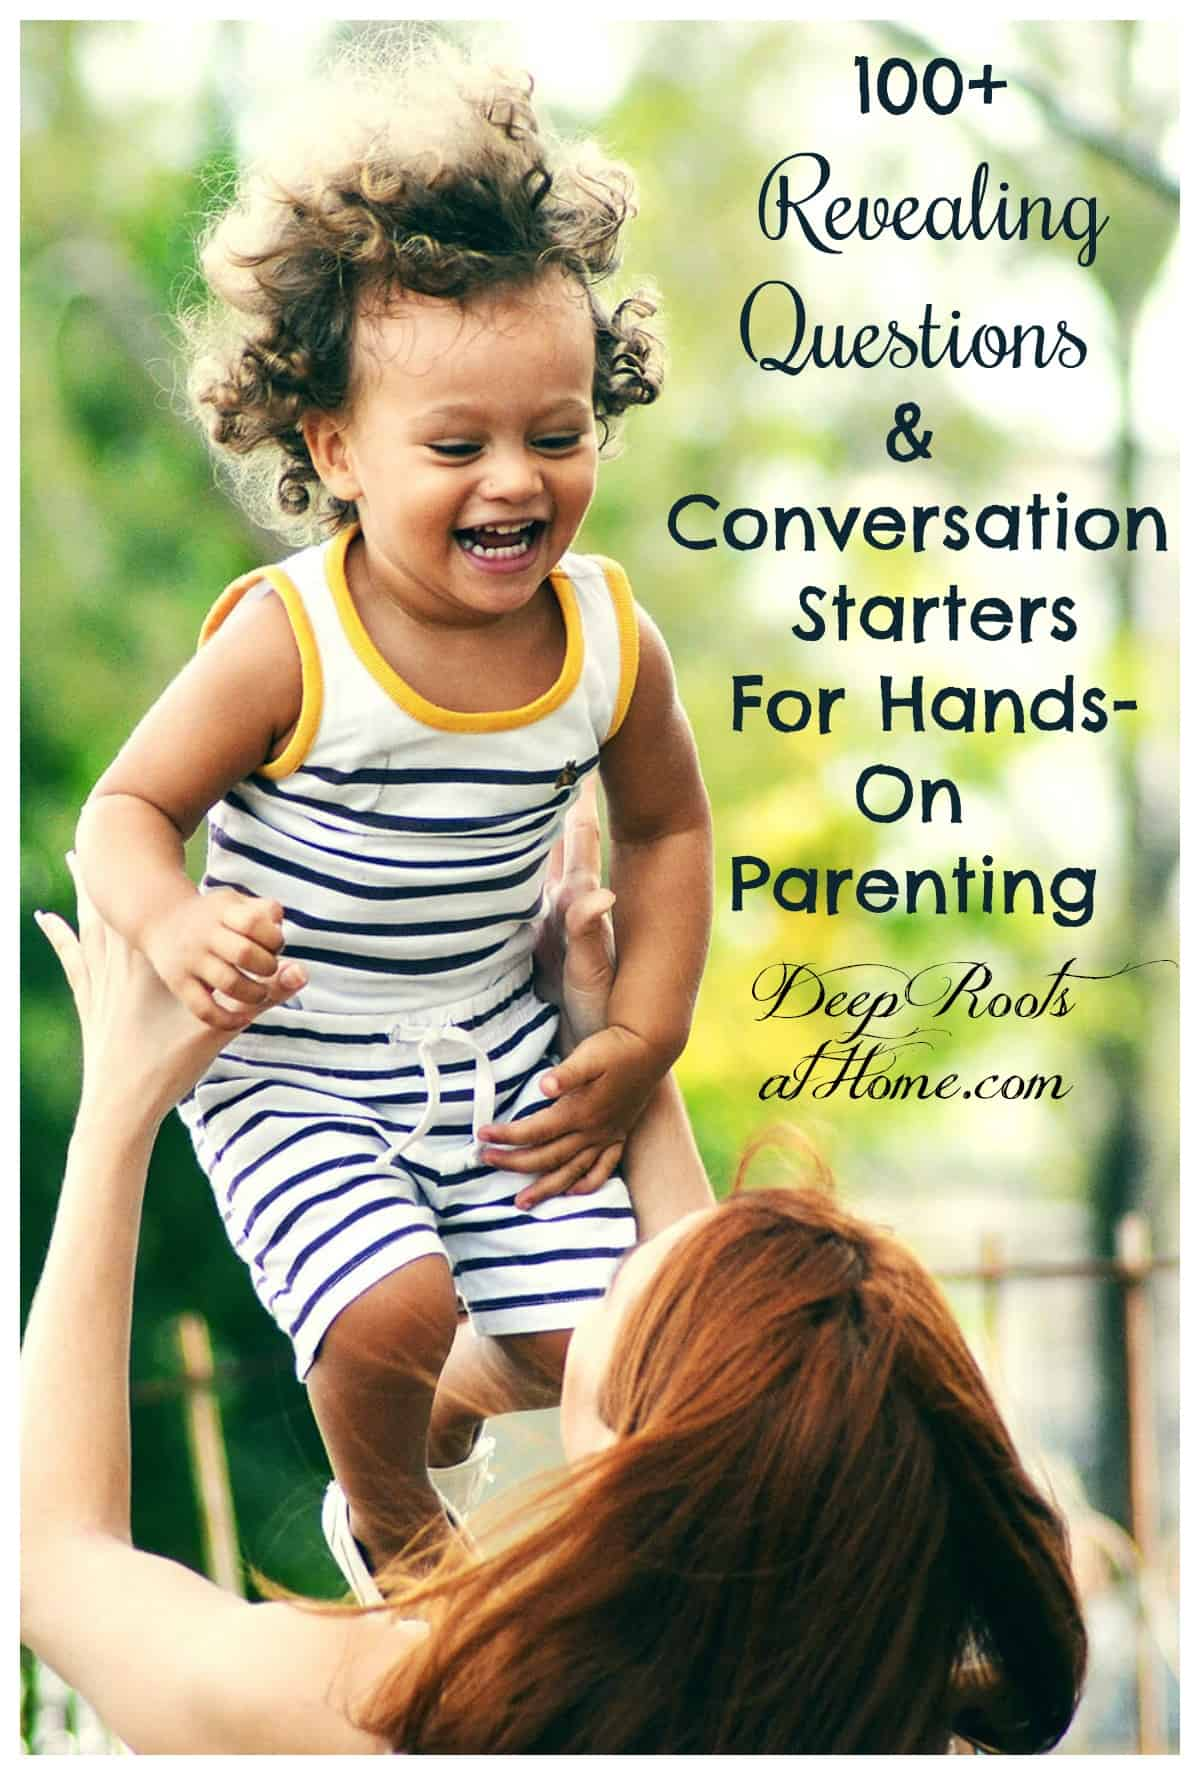 100 Revealing Questions & Conversation Starters For Hands-On Parenting. A young mom and daughter laughing together as they roughhouse.